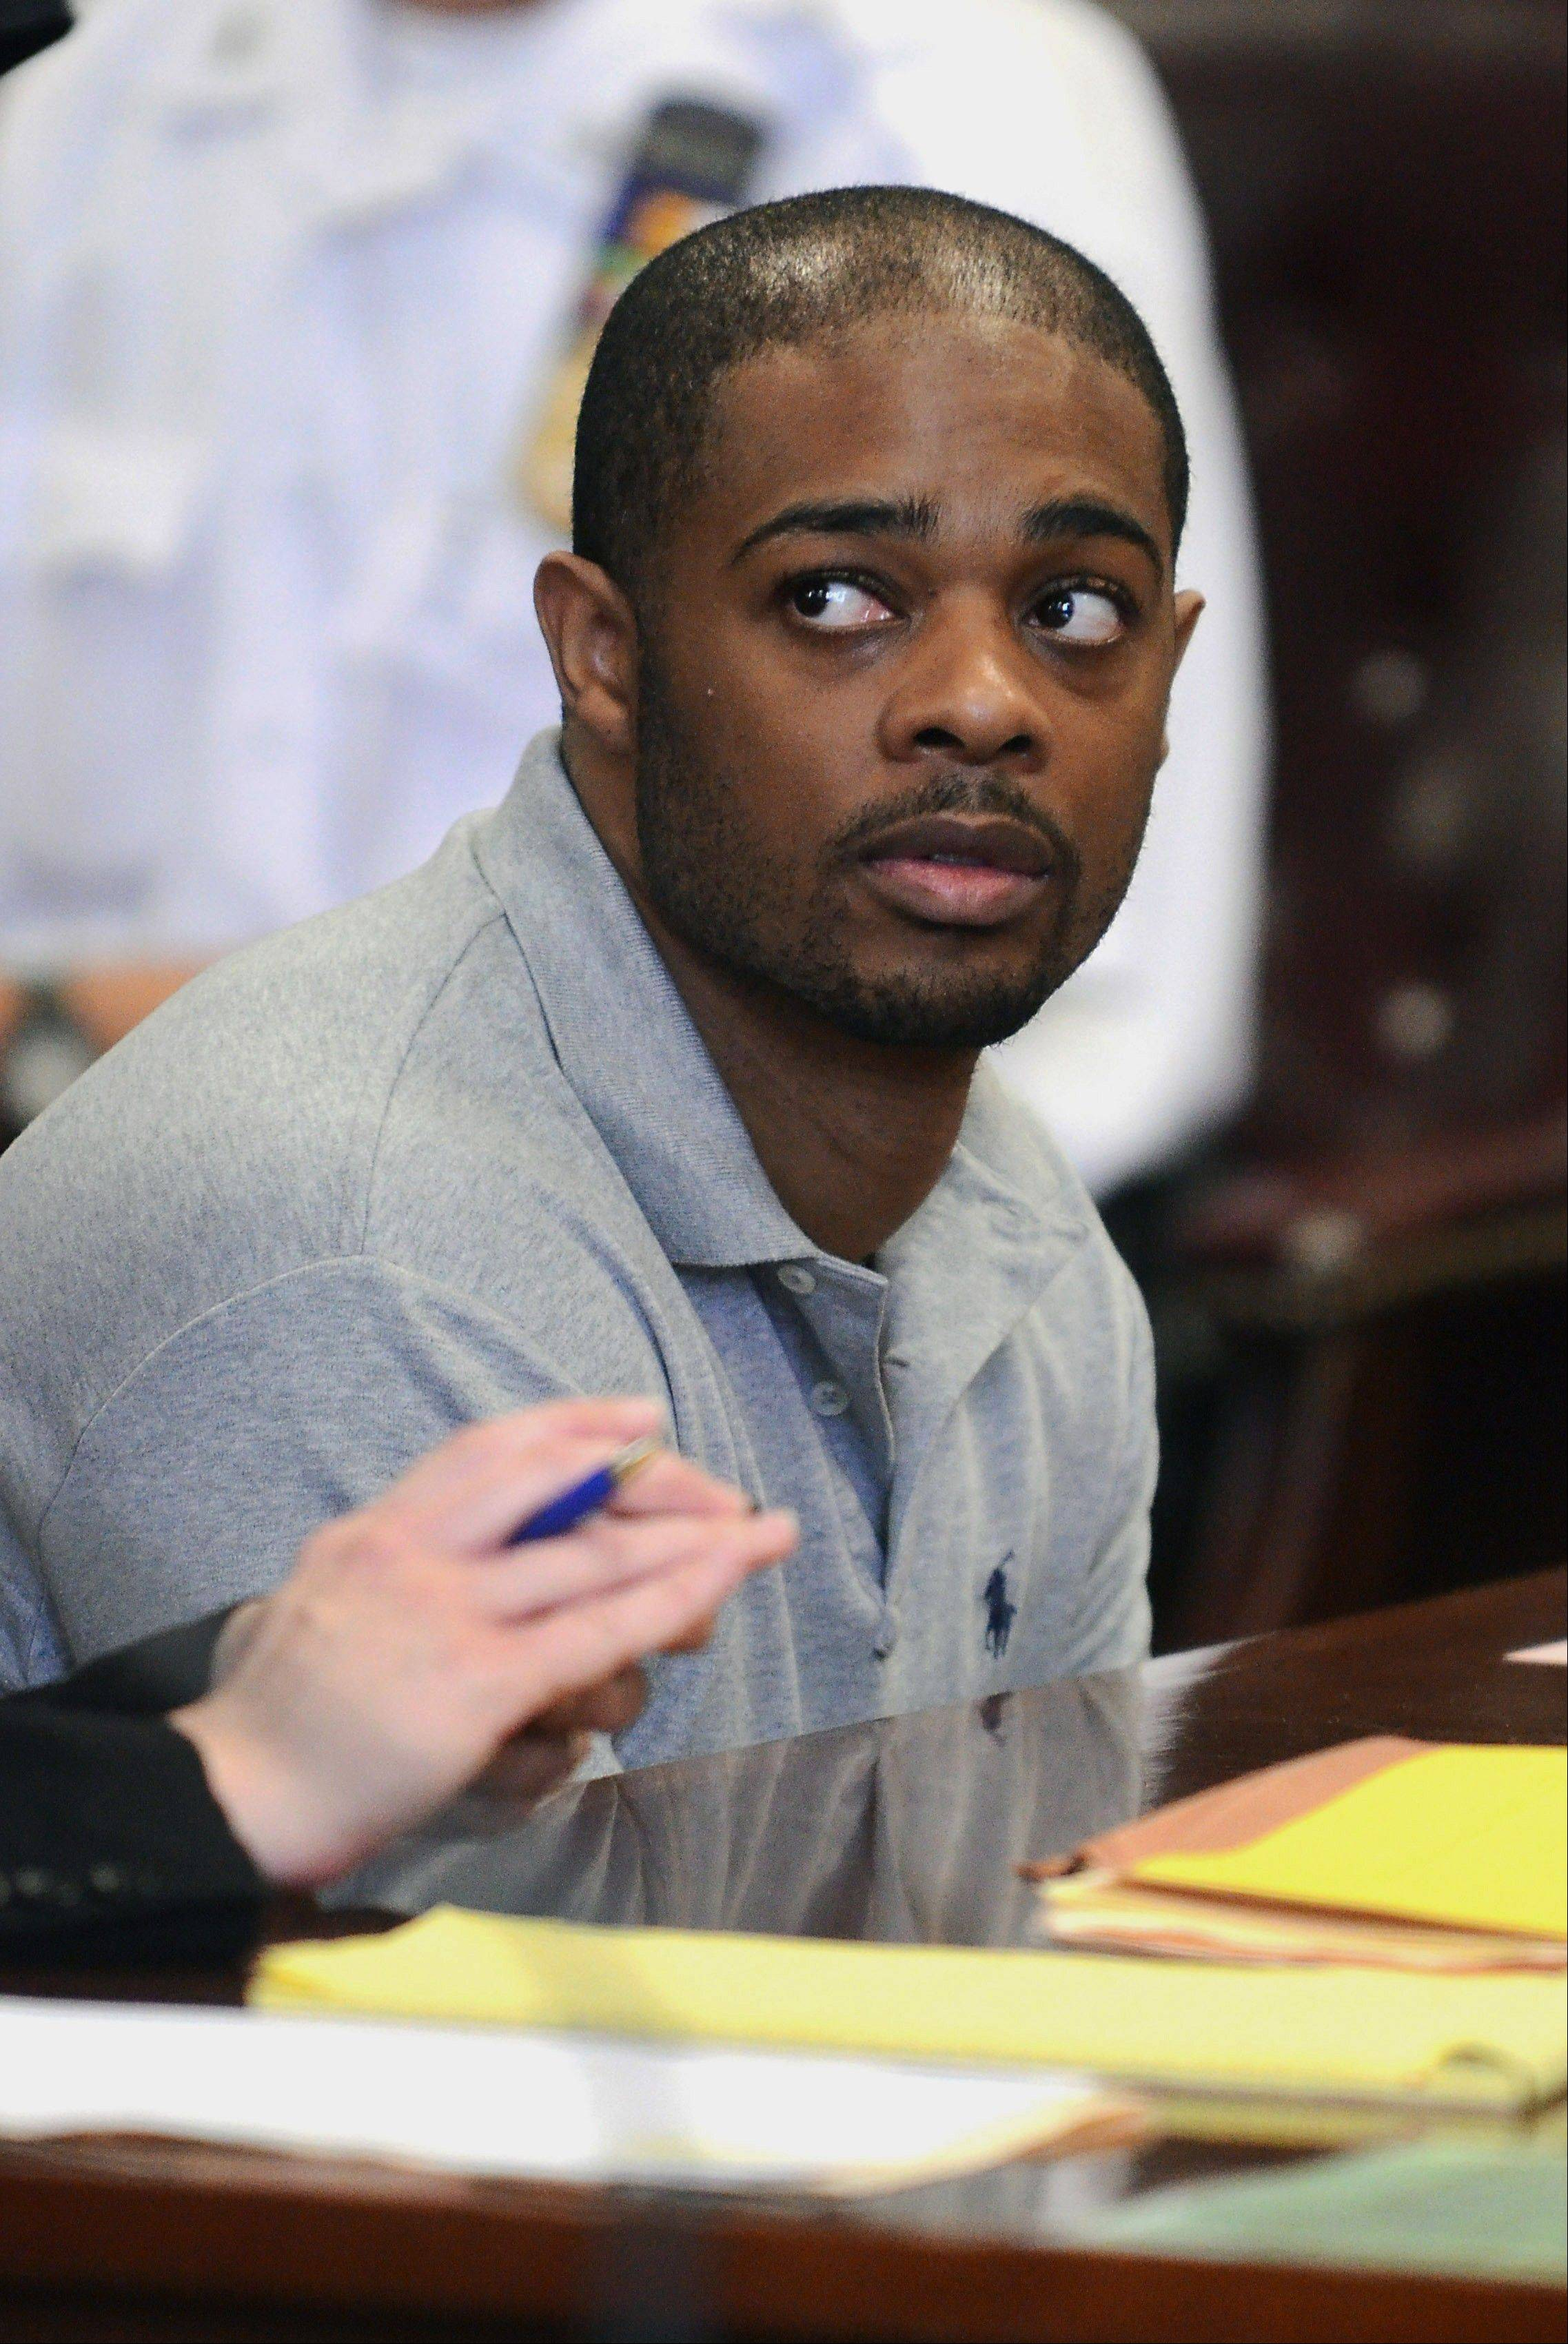 Marque Gumbs plead guilty to grand larceny in Manhattan Supreme Court in New York. Gumbs, who worked for Memorial Sloan-Kettering Cancer, financed his lavish lifestyle by selling toner for copiers and printers that he stole from the hospital.